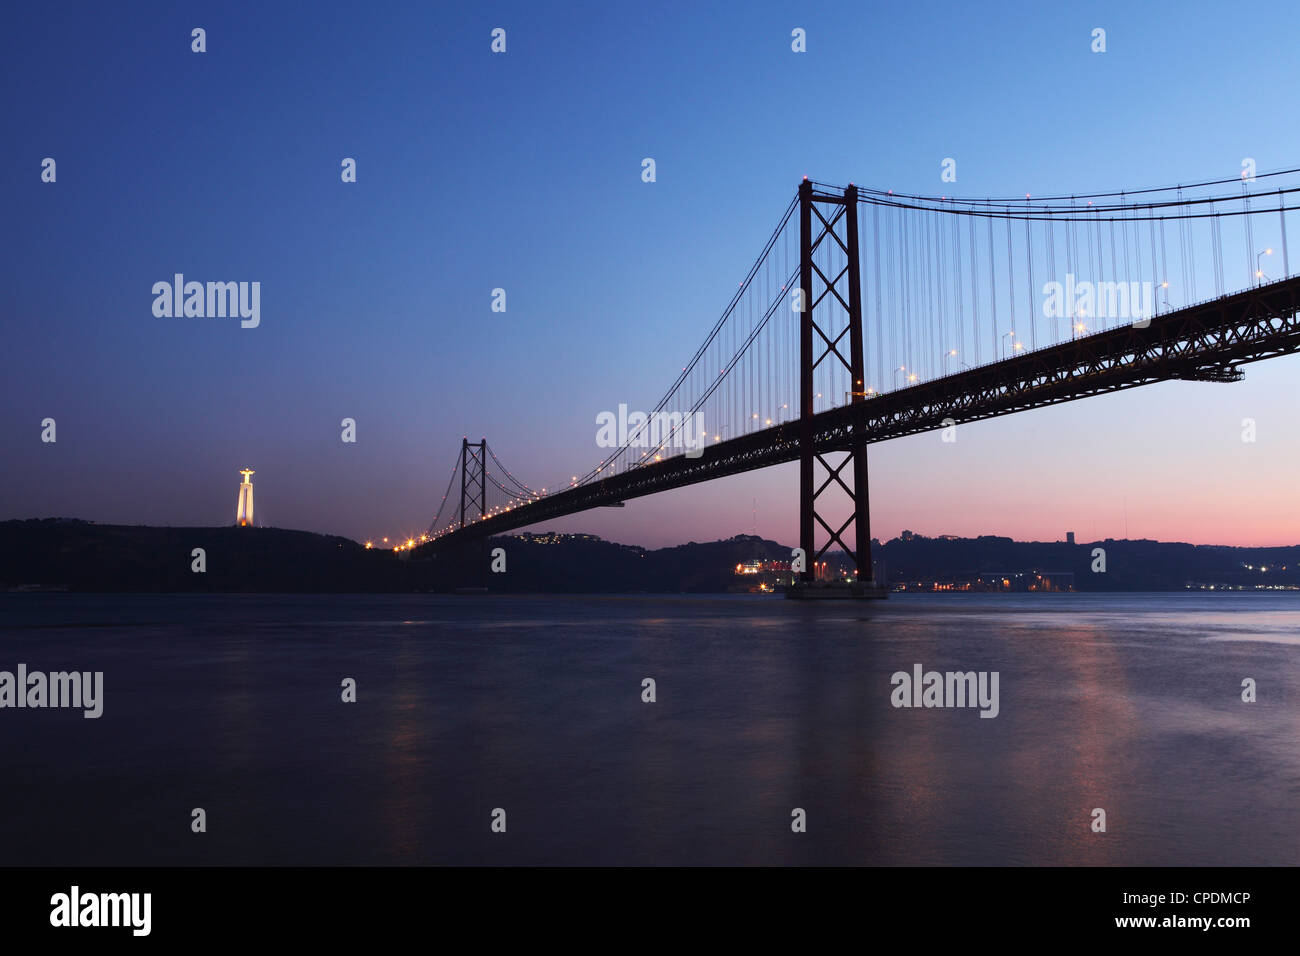 The 25 April Suspension Bridge at dusk over the River Tagus (Rio Tejo), Christus Rei is illuminated at Almada, Lisbon, - Stock Image